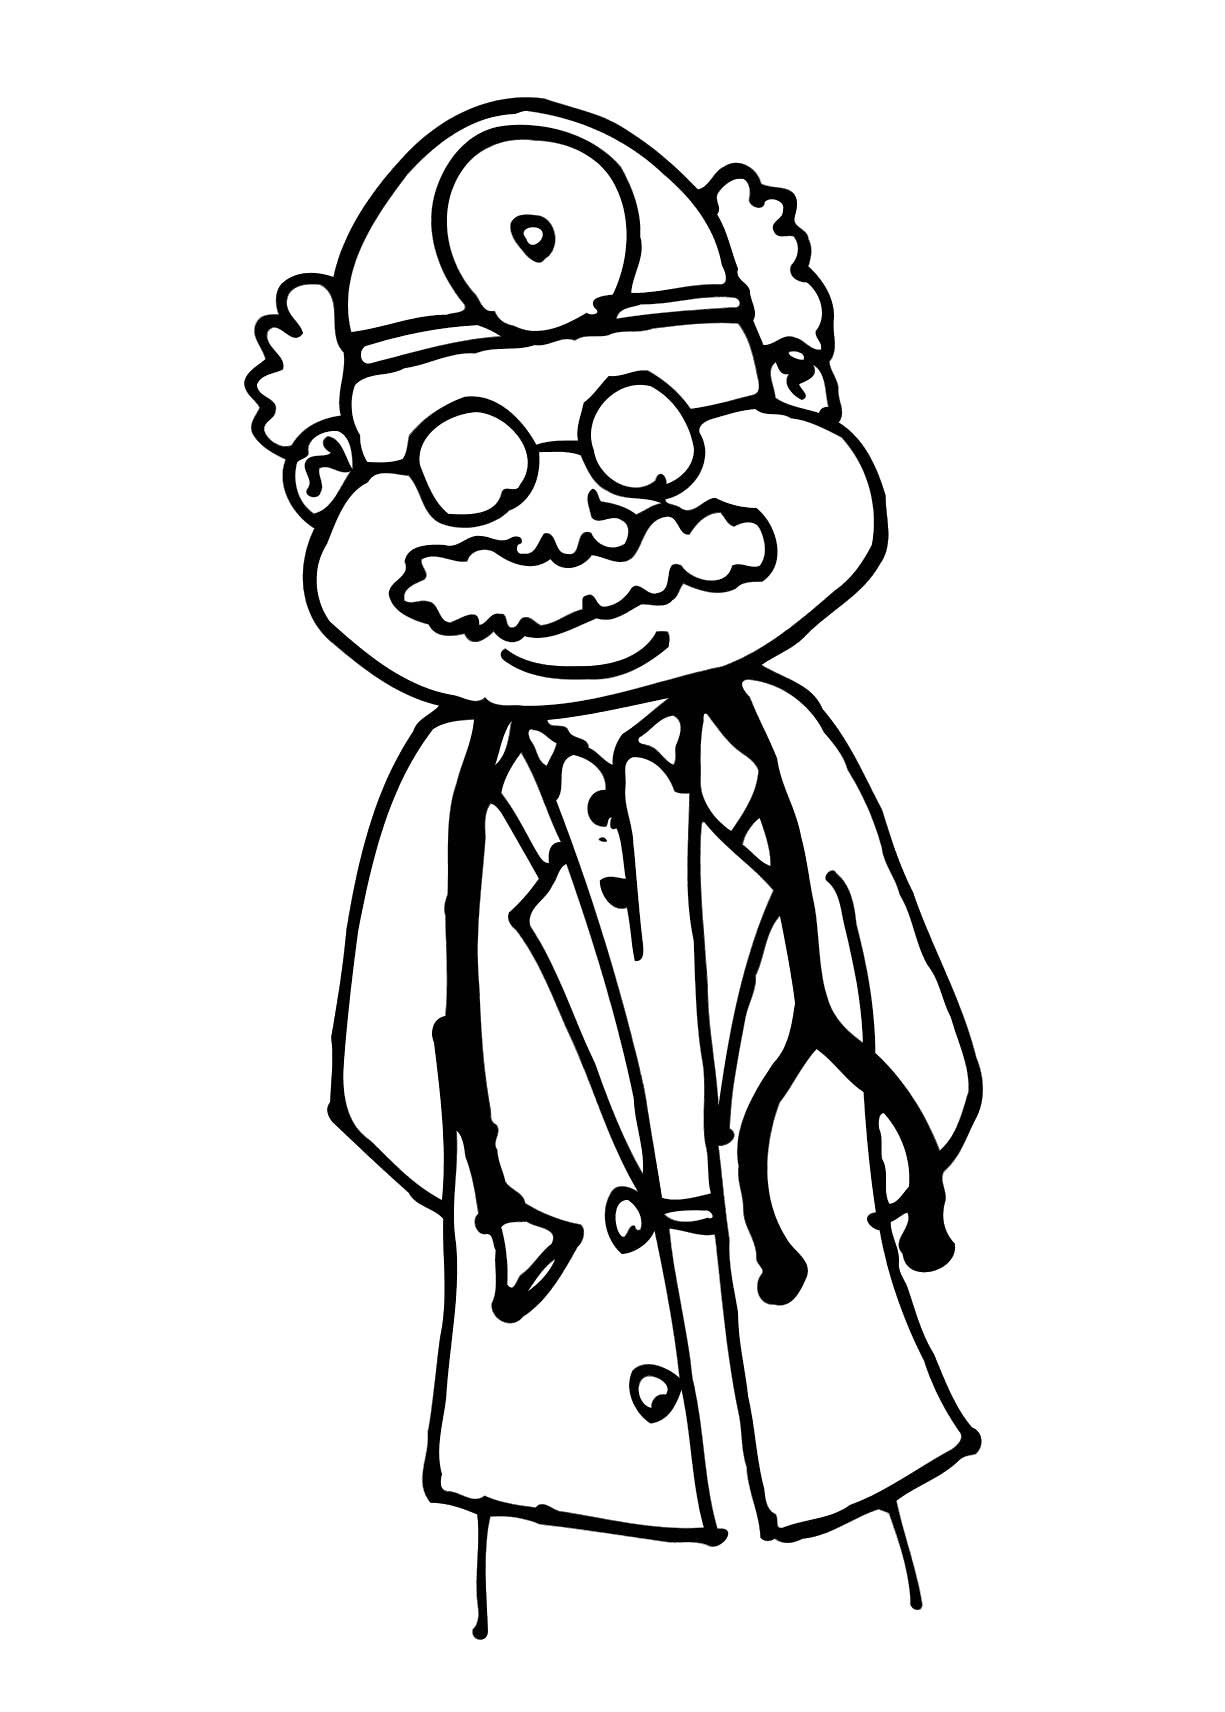 colouring pages of doctor doctor coloring pages for understanding kids why do they colouring doctor pages of